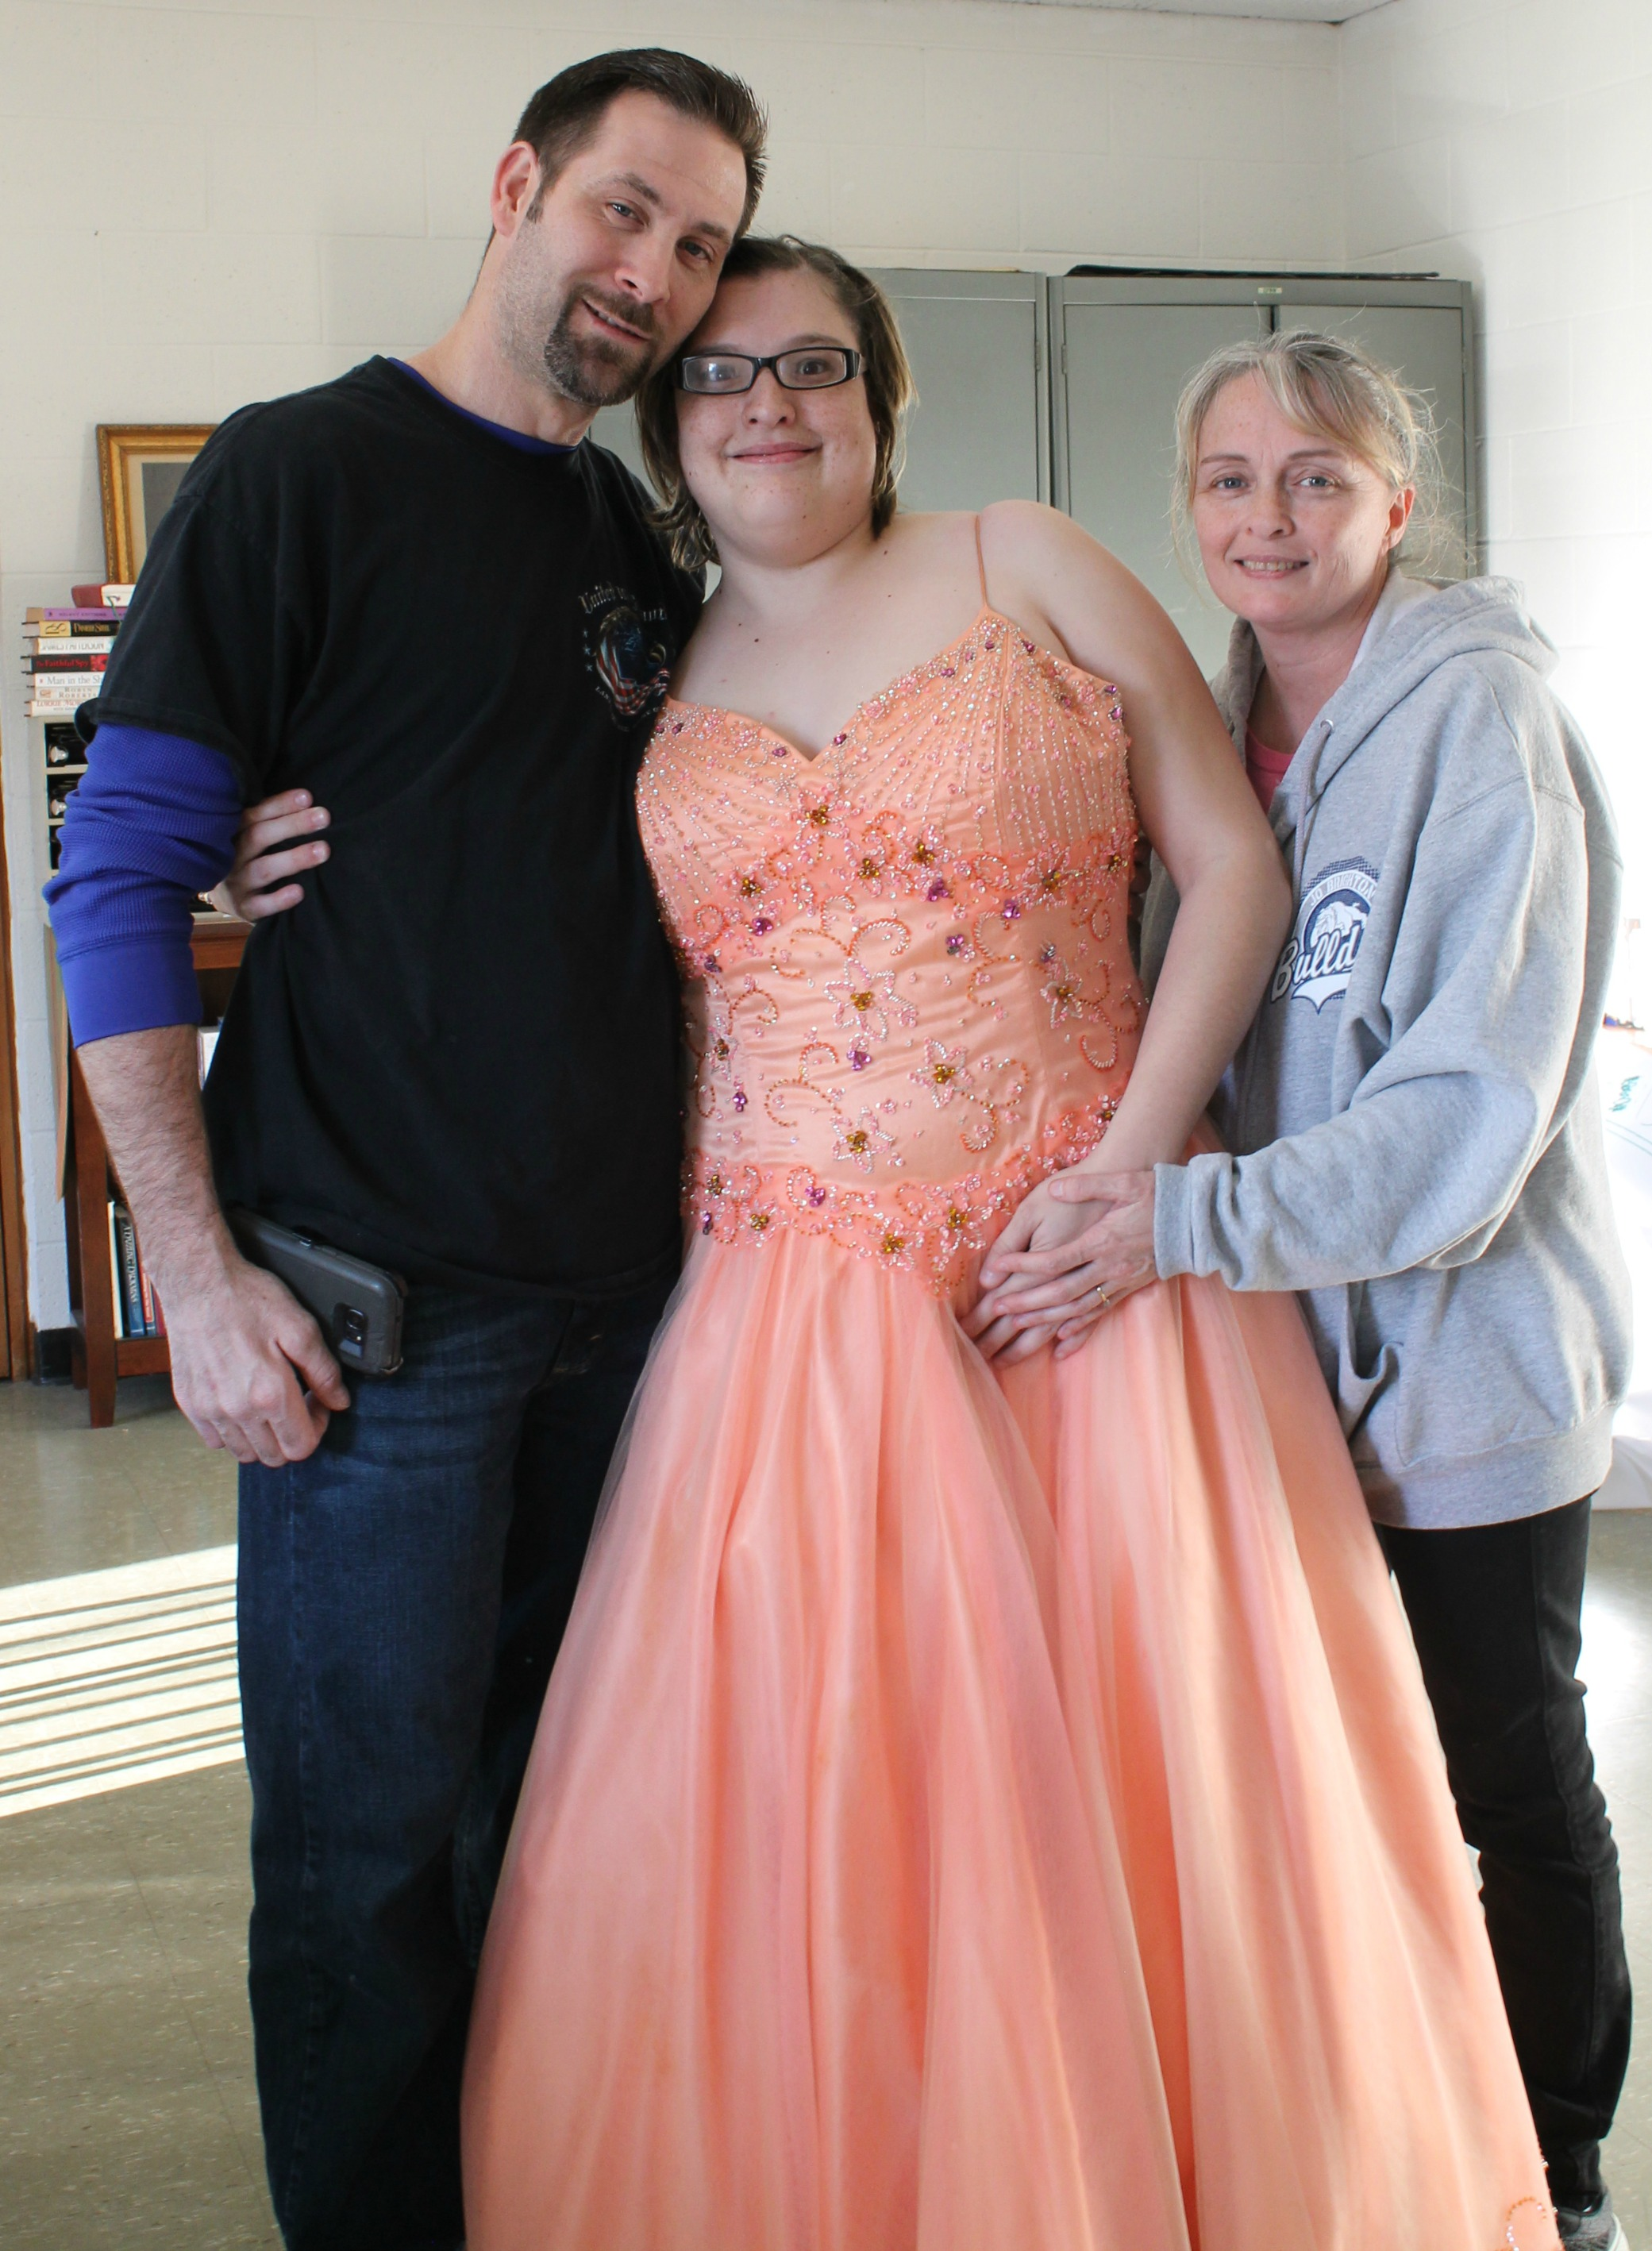 Community Nonprofit Provides Prom Dresses to HS Girls in Need ...